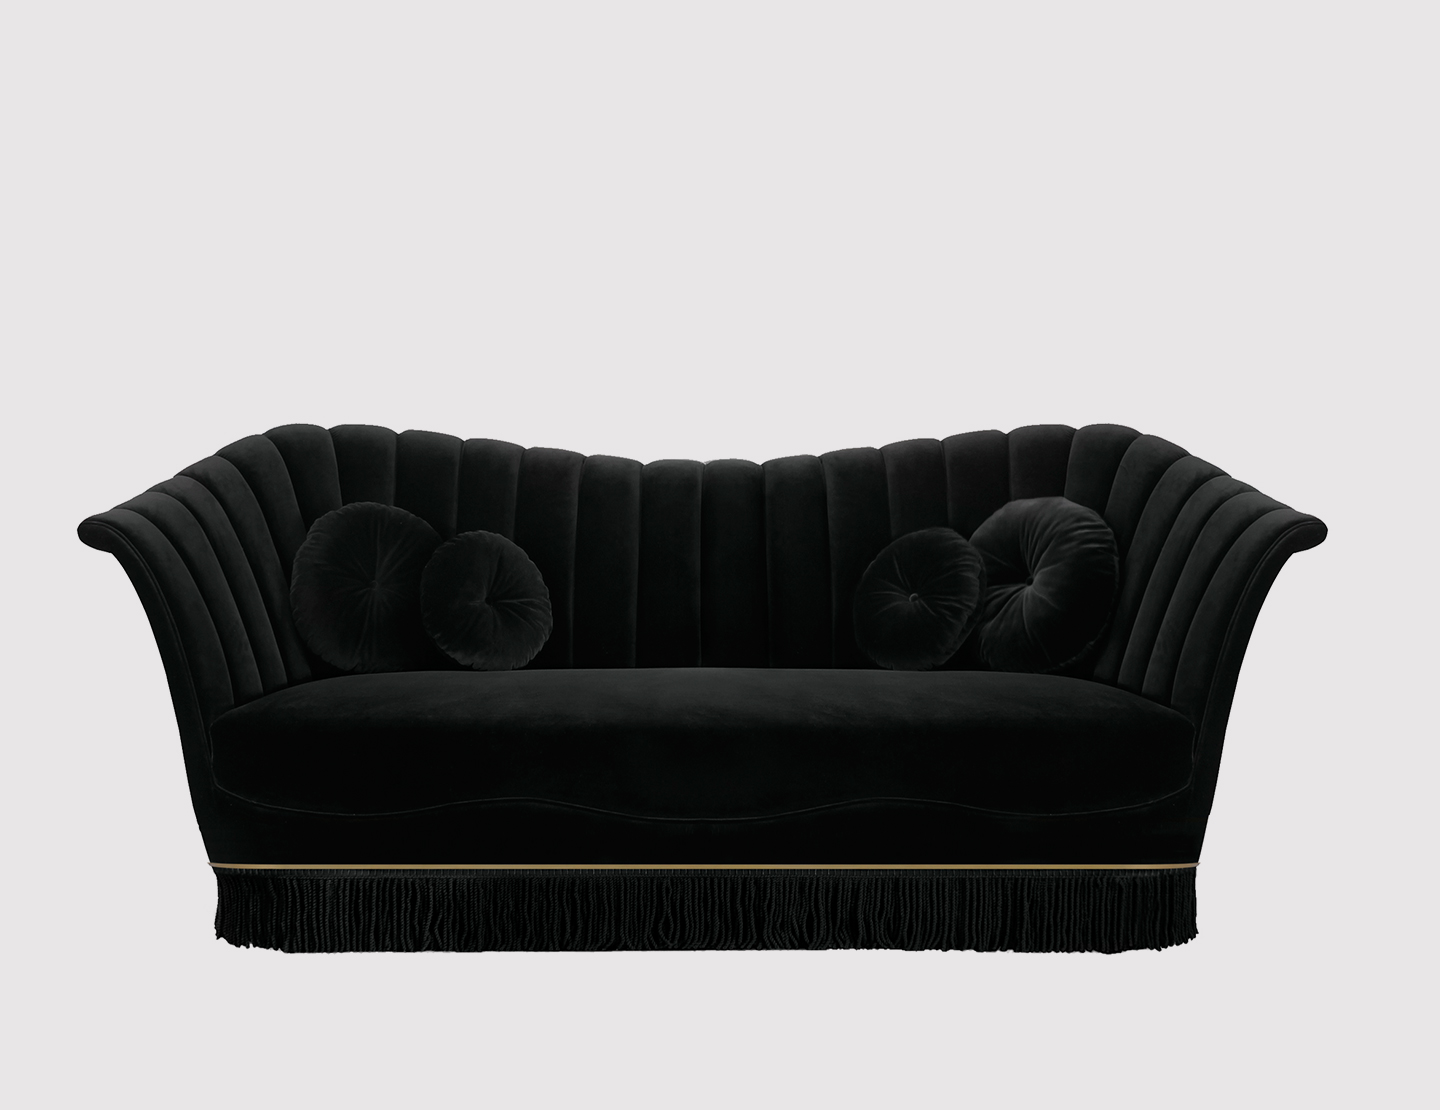 Caprichosa Sofa by KOKET